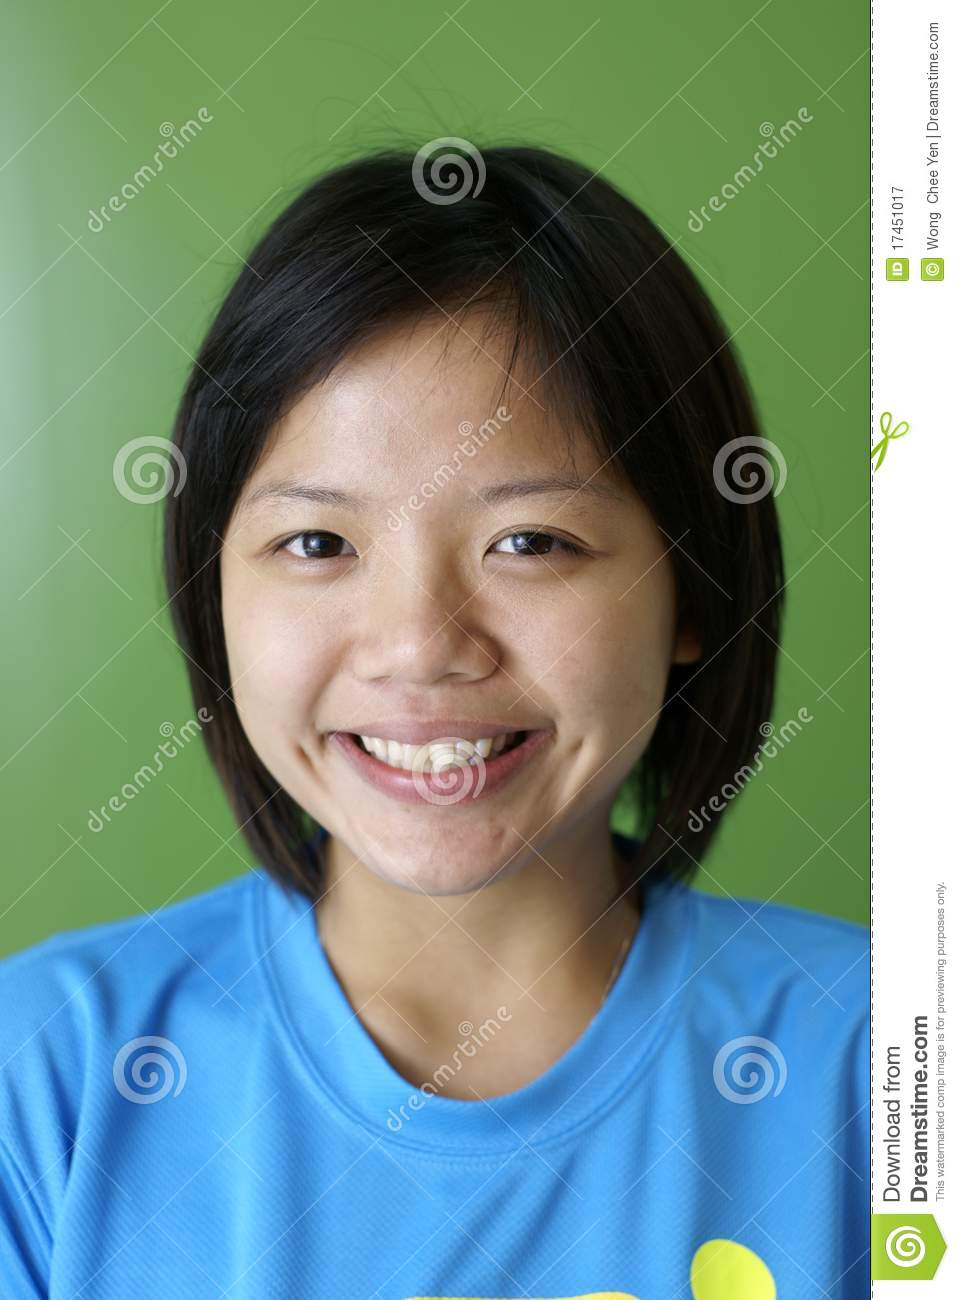 Smiling Asian Teen Girl Royalty Free Stock Photography